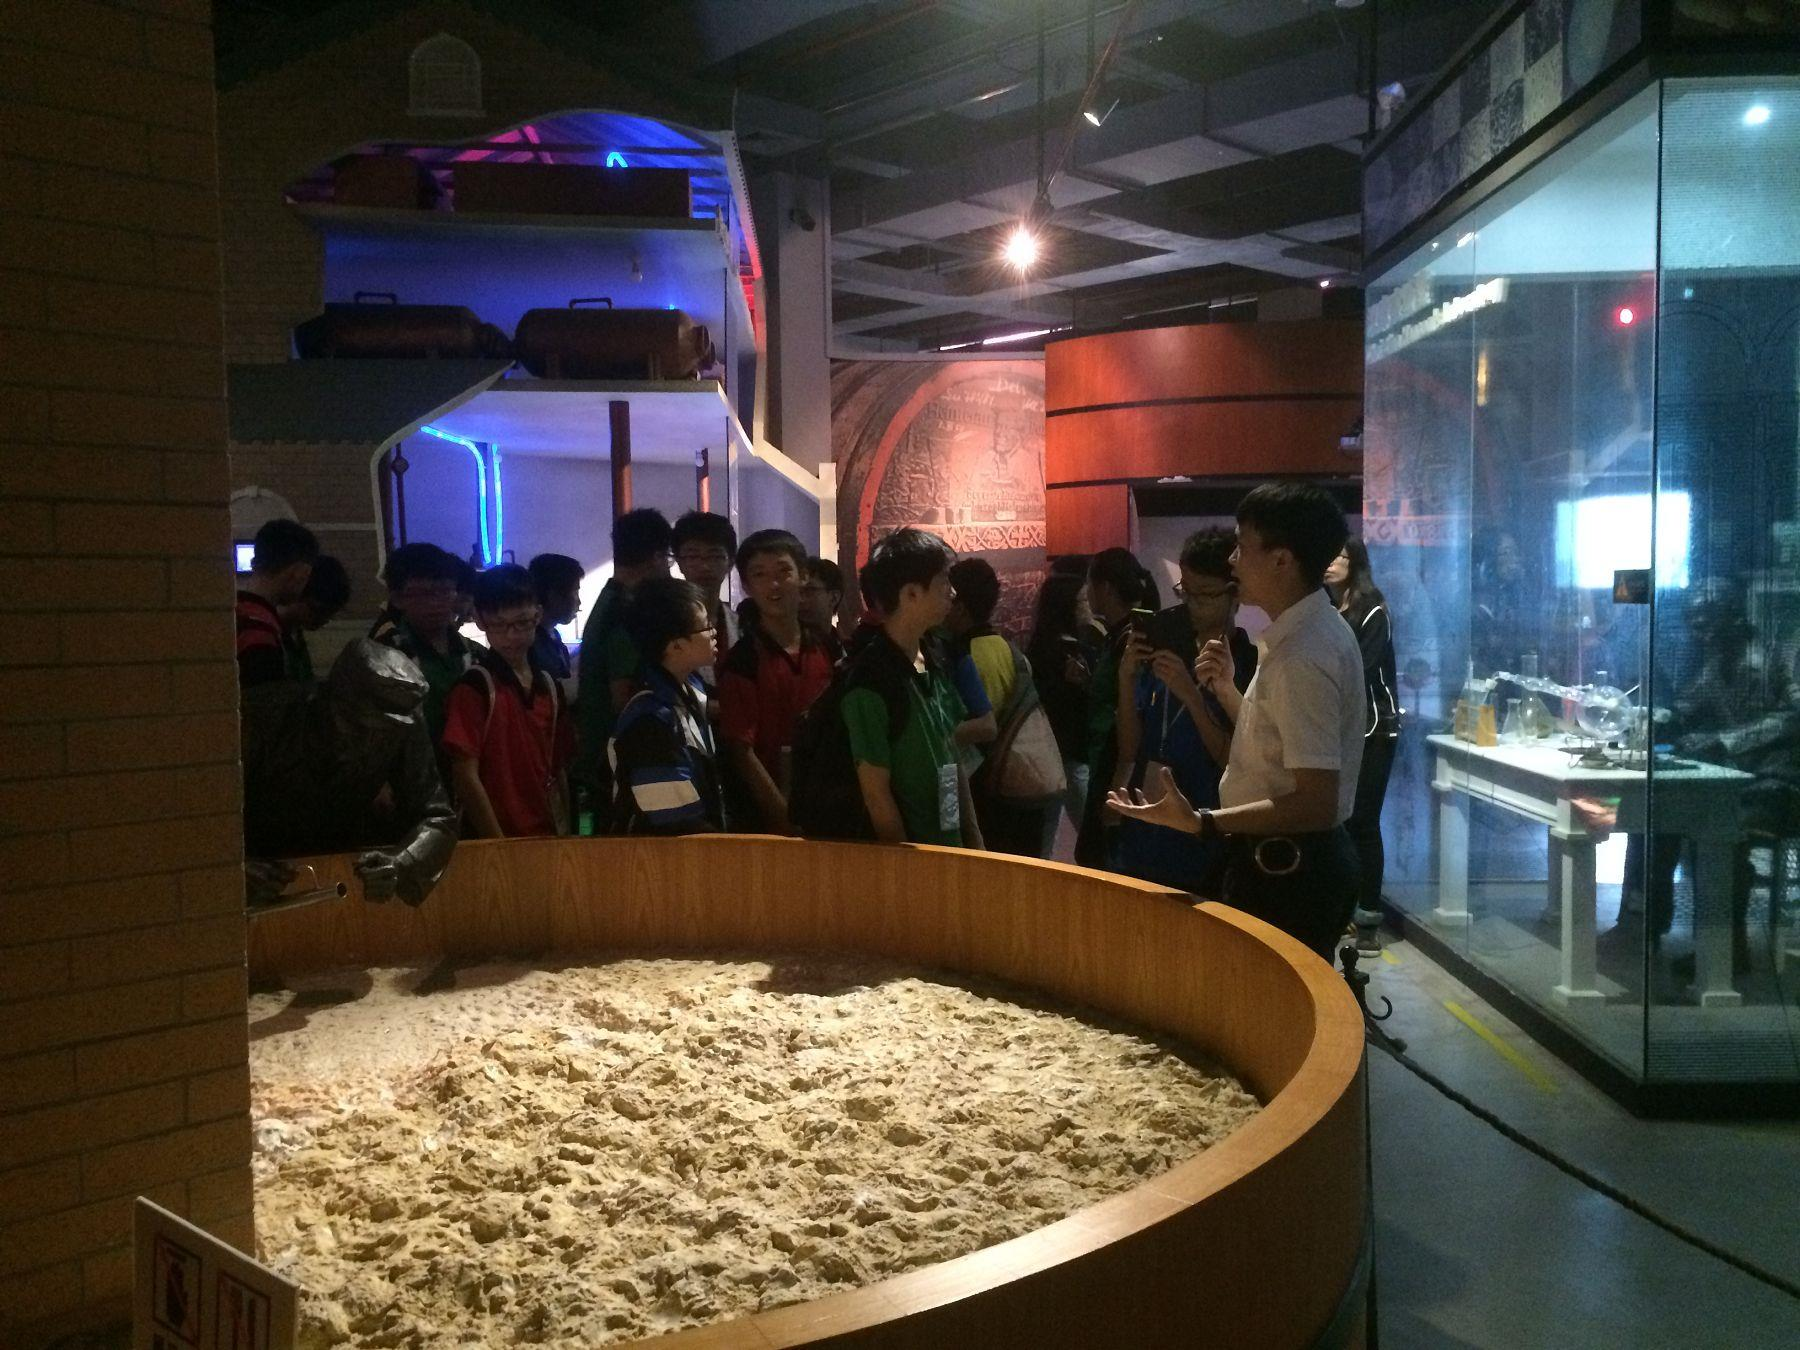 Students learnt brewery production processes as well as its management and operations.